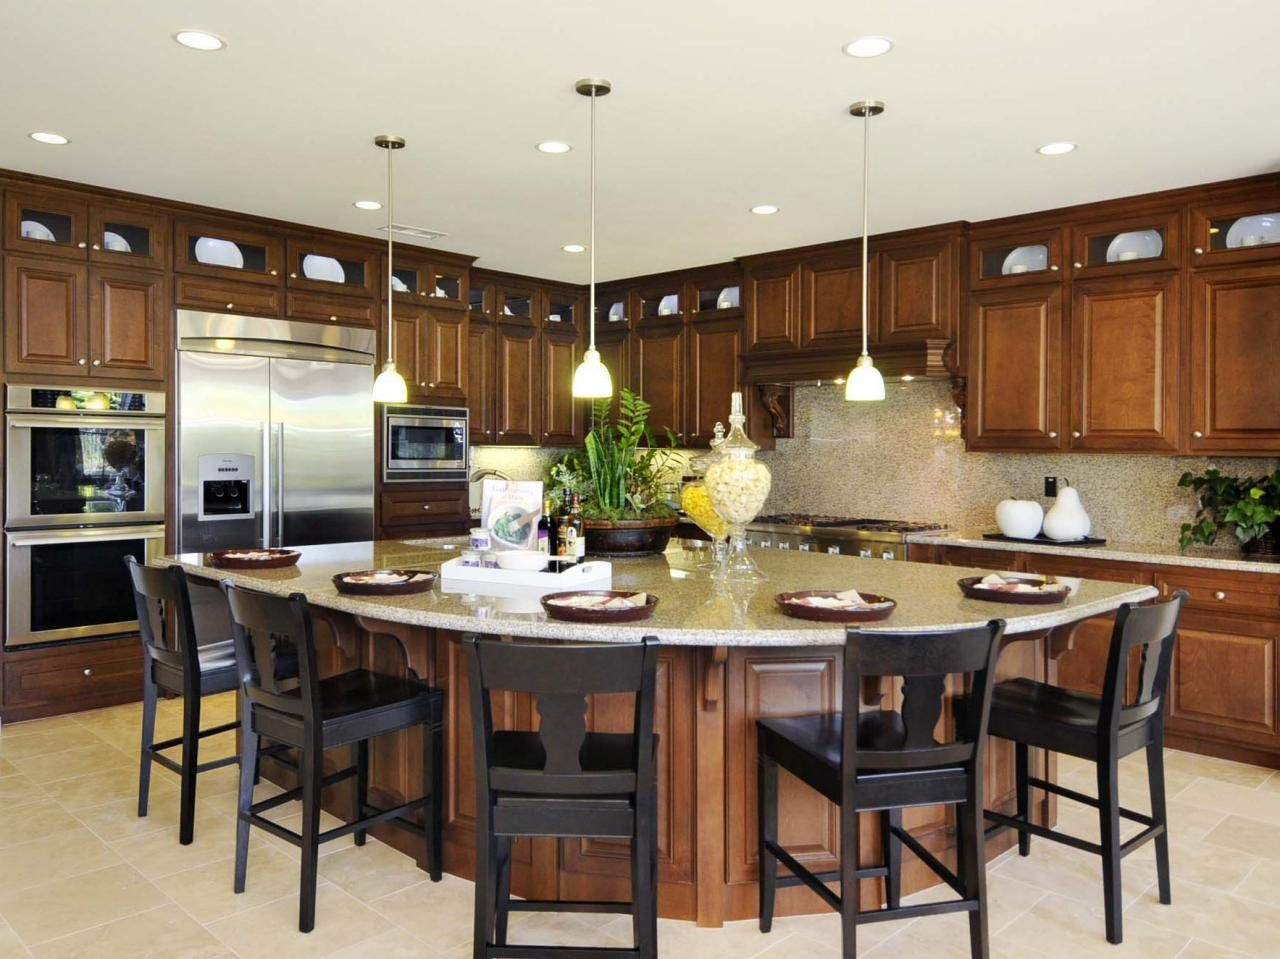 Kitchen Island Design Ideas Pictures Options Tips Designs Choose Layouts Remodeling Materials Hgtv